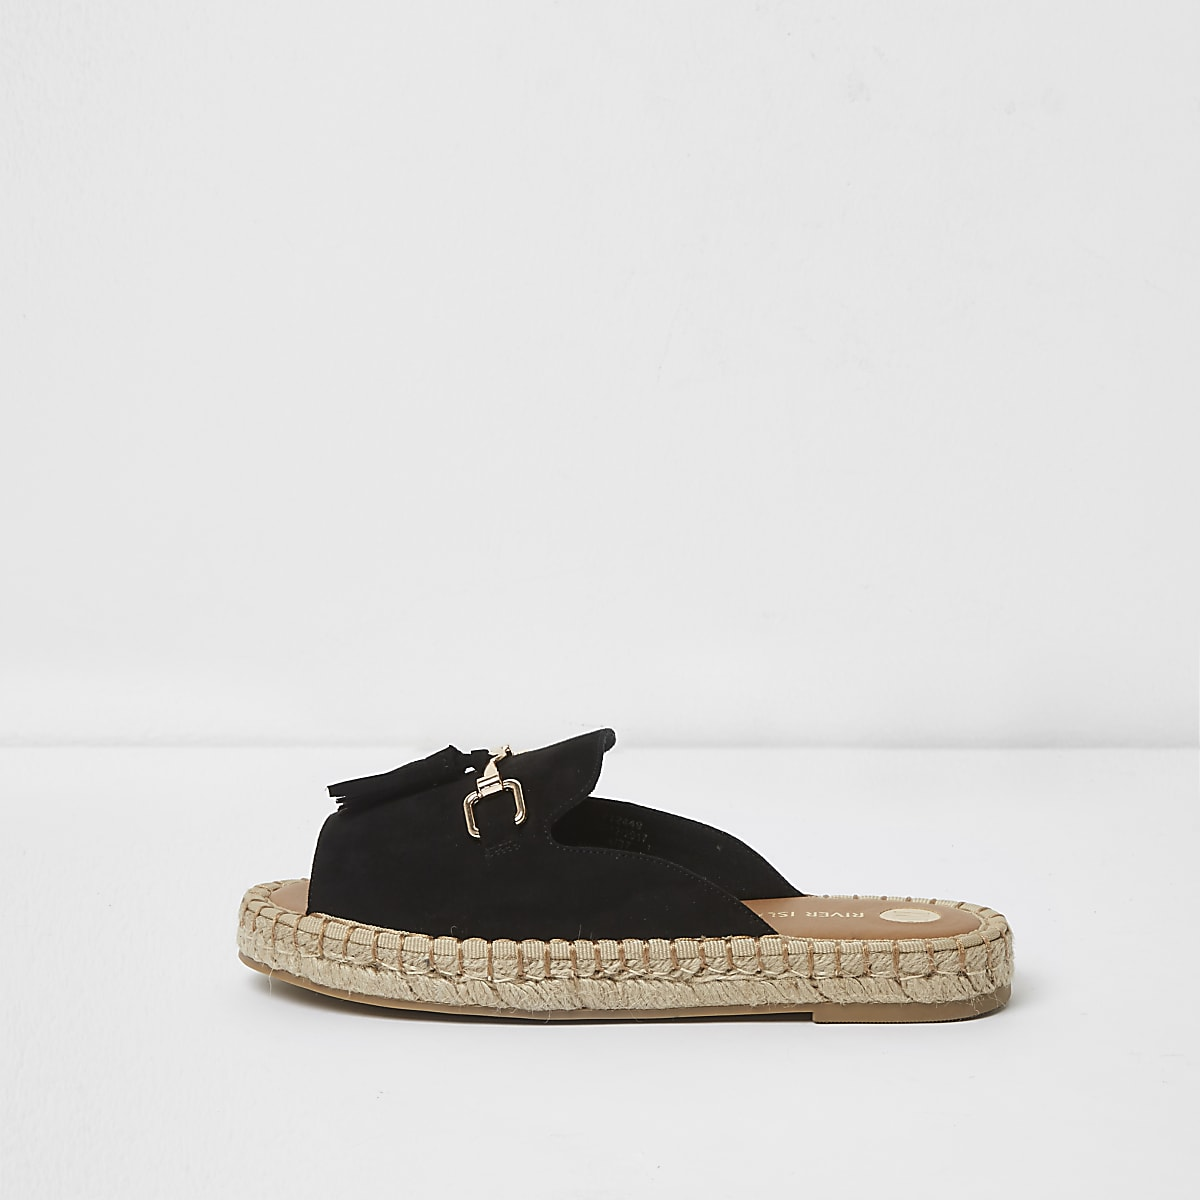 f5048be963d Black Wide fit backless espadrille loafers - Sandals - Shoes   Boots - women